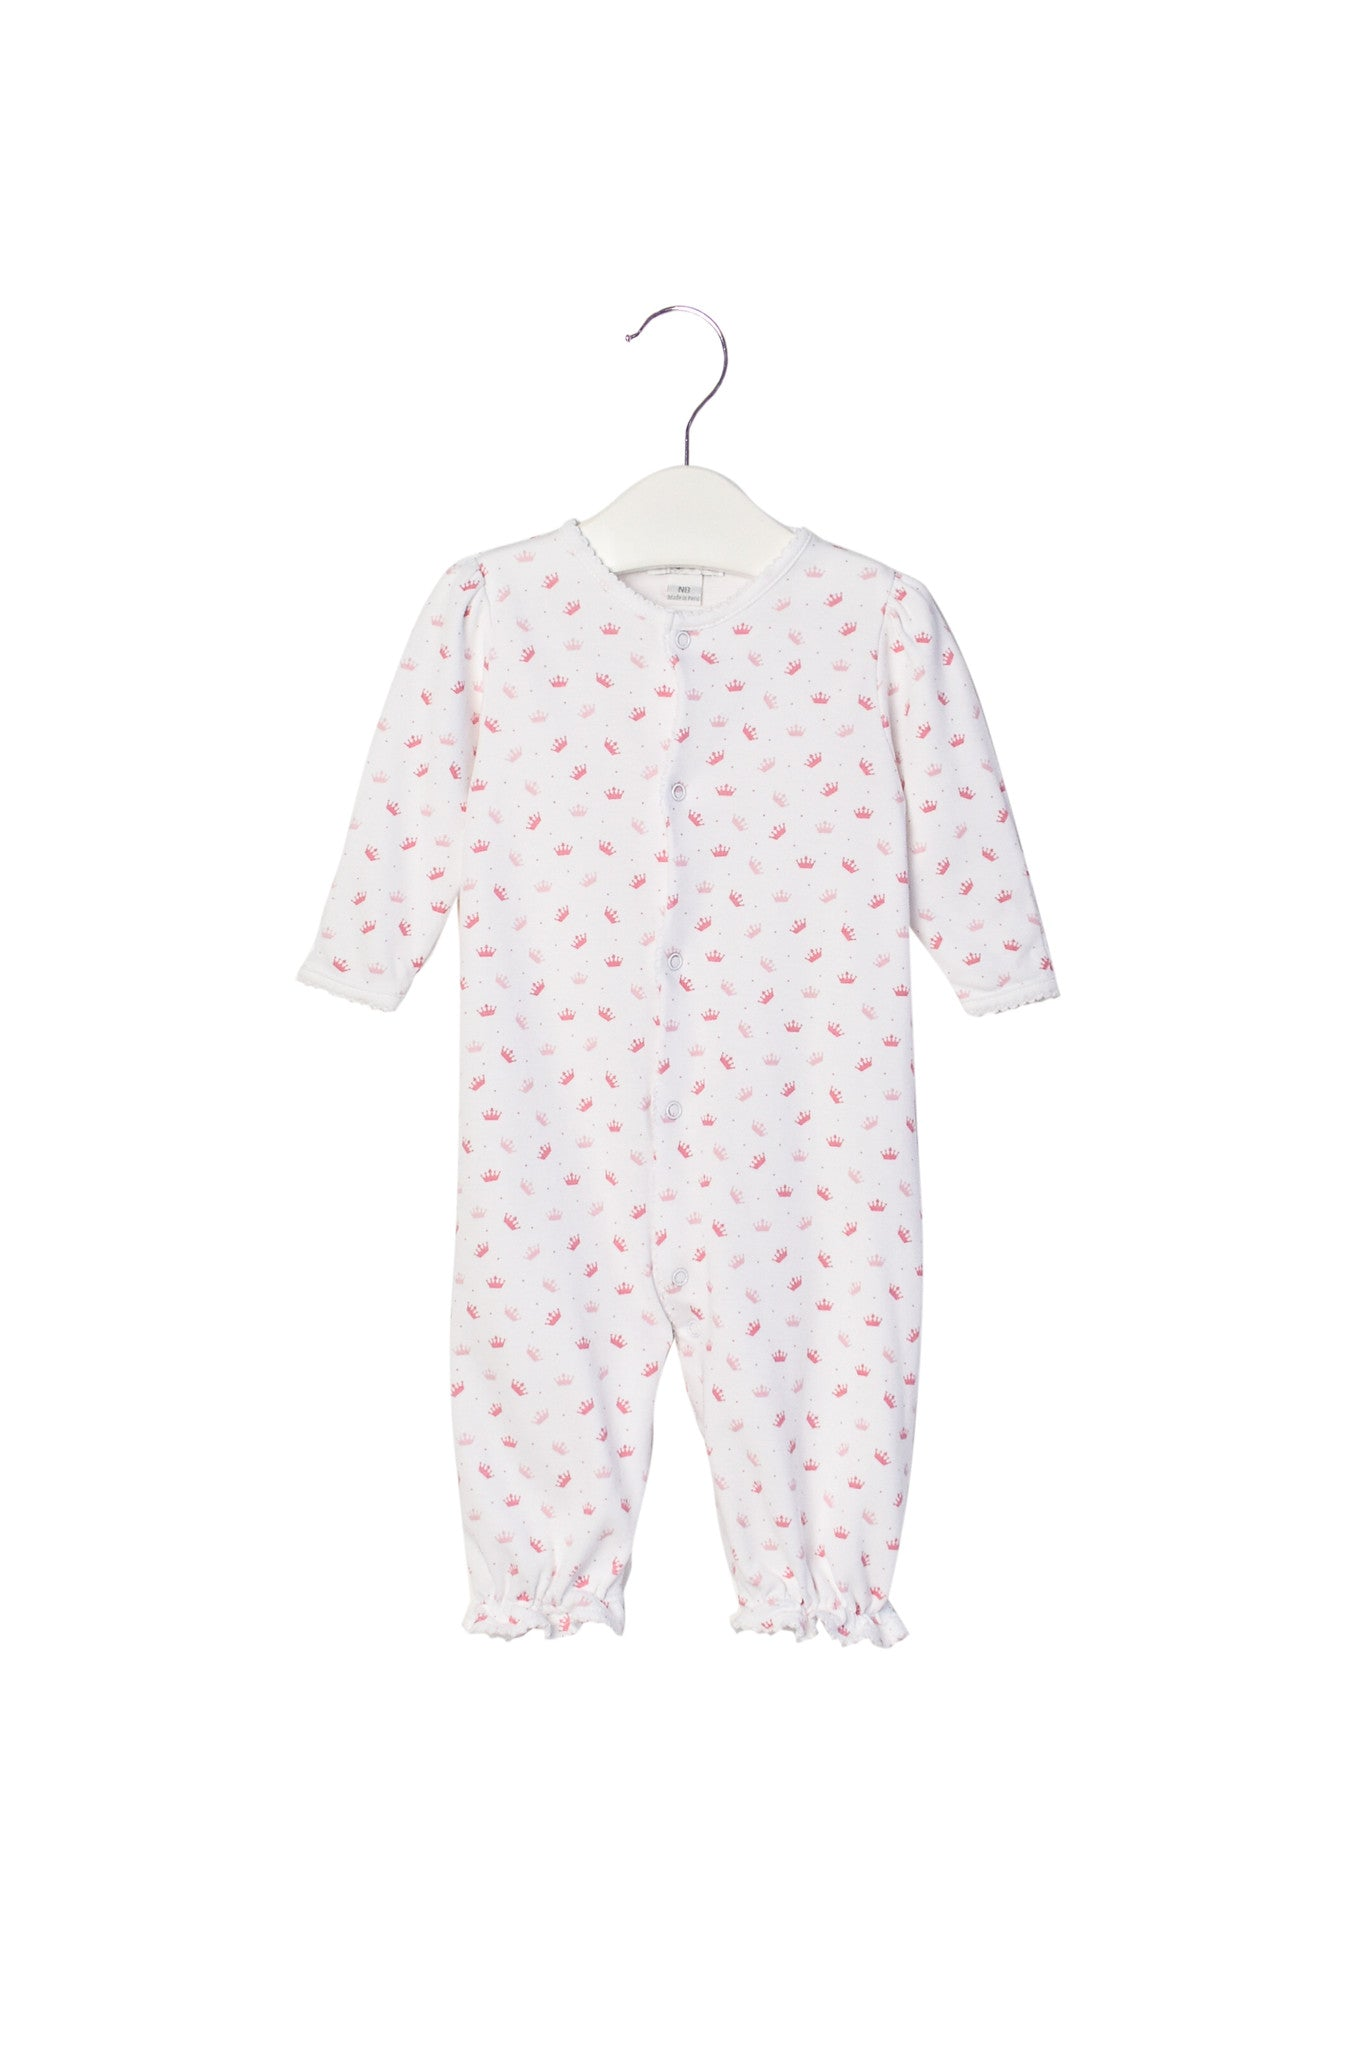 10003599 Kissy Kissy Baby~Jumpsuit NB at Retykle